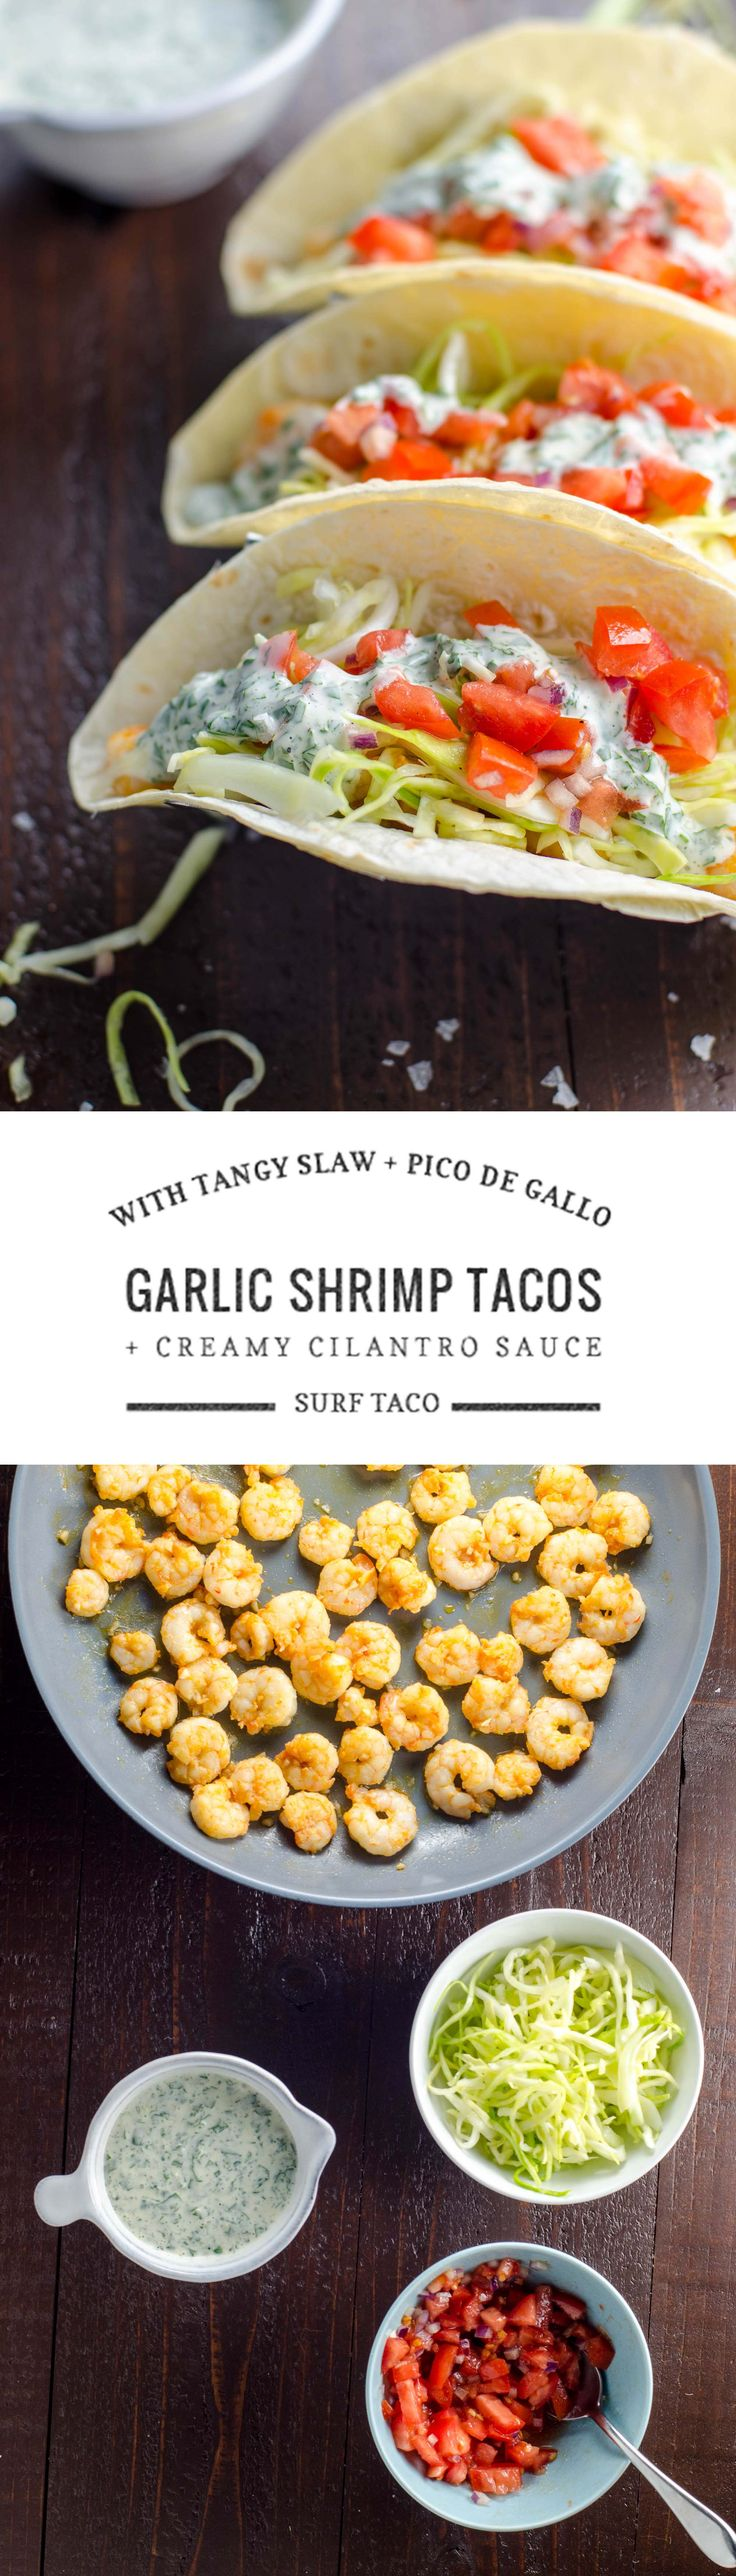 This easy and super-flavorful recipe for garlic shrimp tacos with cabbage slaw, pico de gallo and cilantro sauce is inspired by NJ's Surf Taco restaurants.